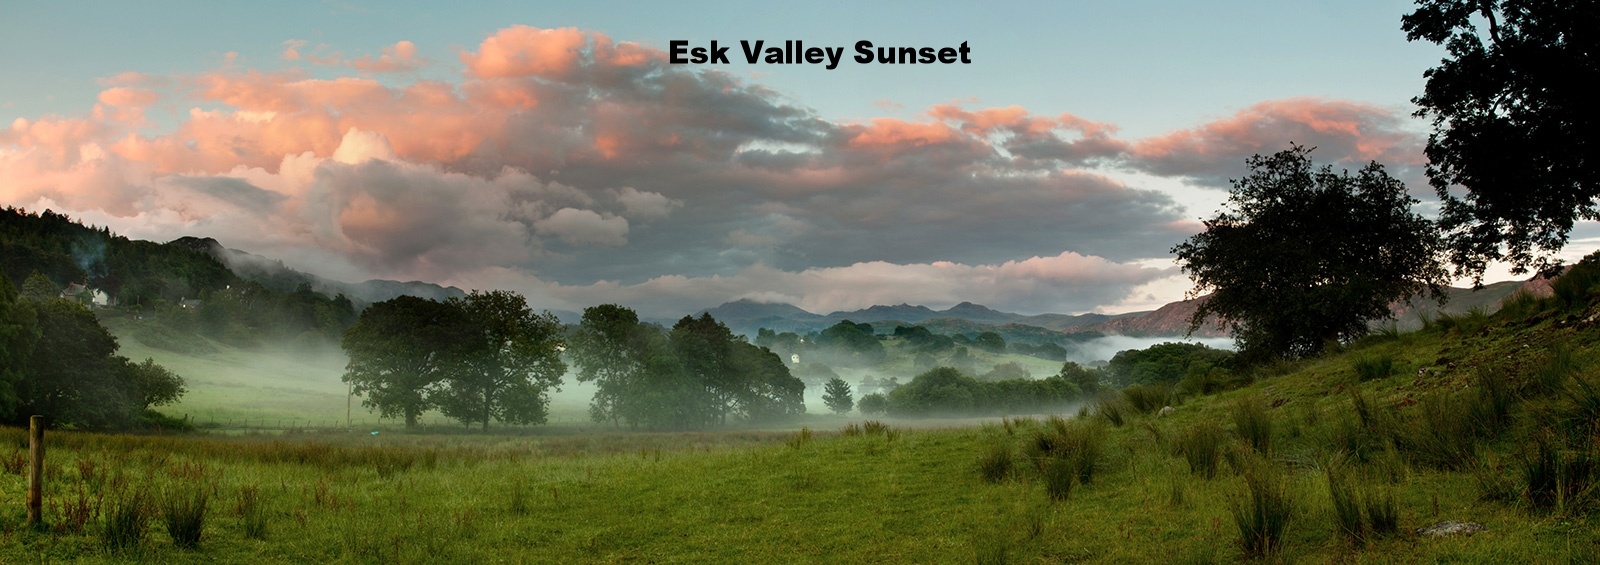 Mist-Sunset-over-The-Esk-Valley.jpg